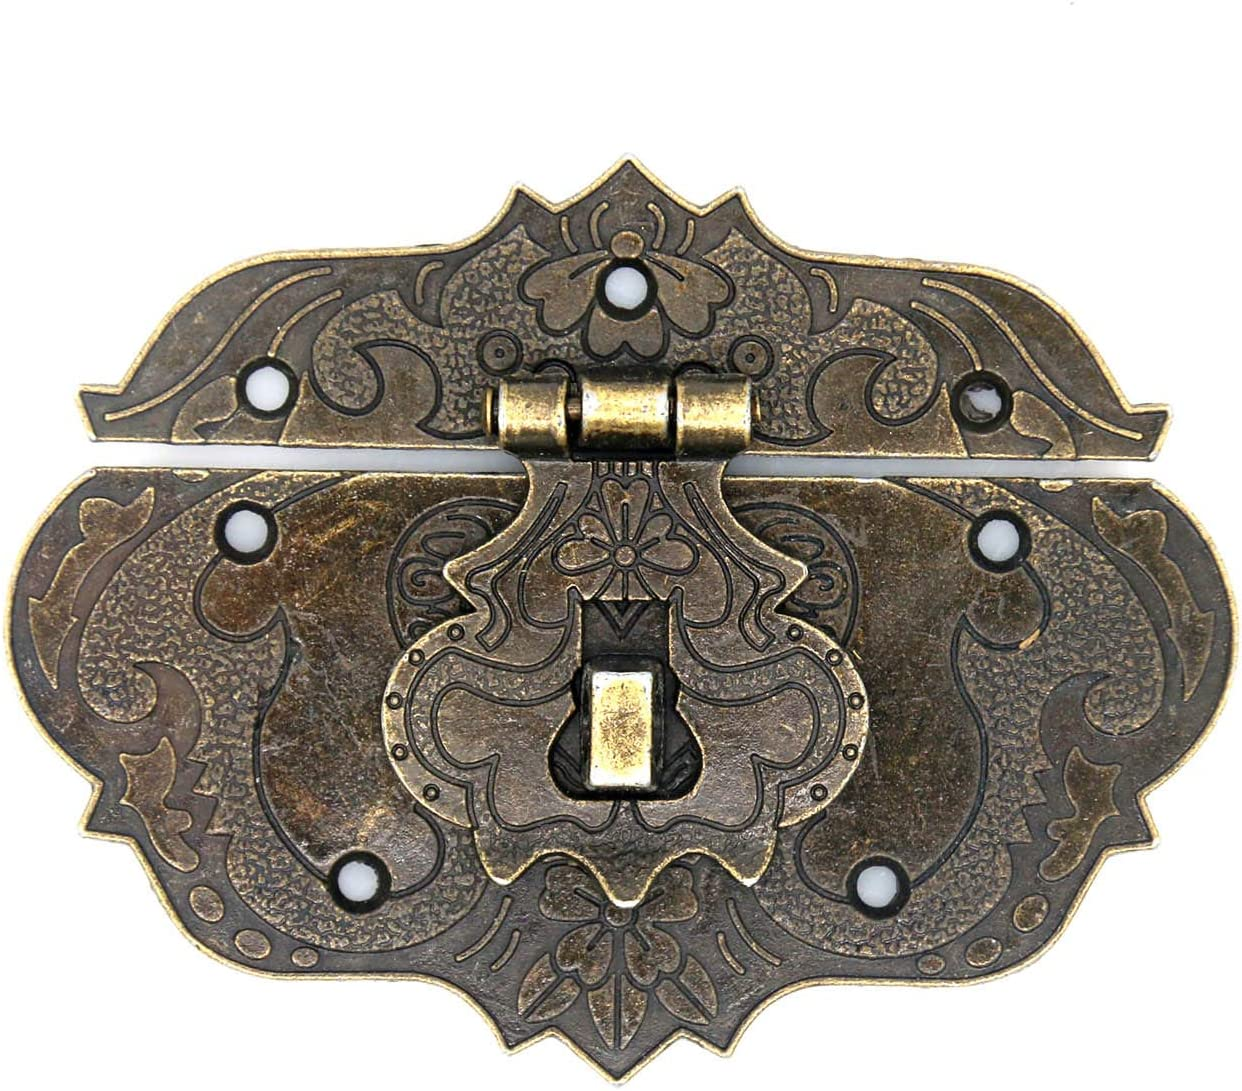 2 PCs Vintage Style Antique Brass Hasp Retro Embossing Decorative Latch with Padlock Hole for Jewelry Box Wooden Chest Cabinet 3.3 by 2.6 inch, L x W